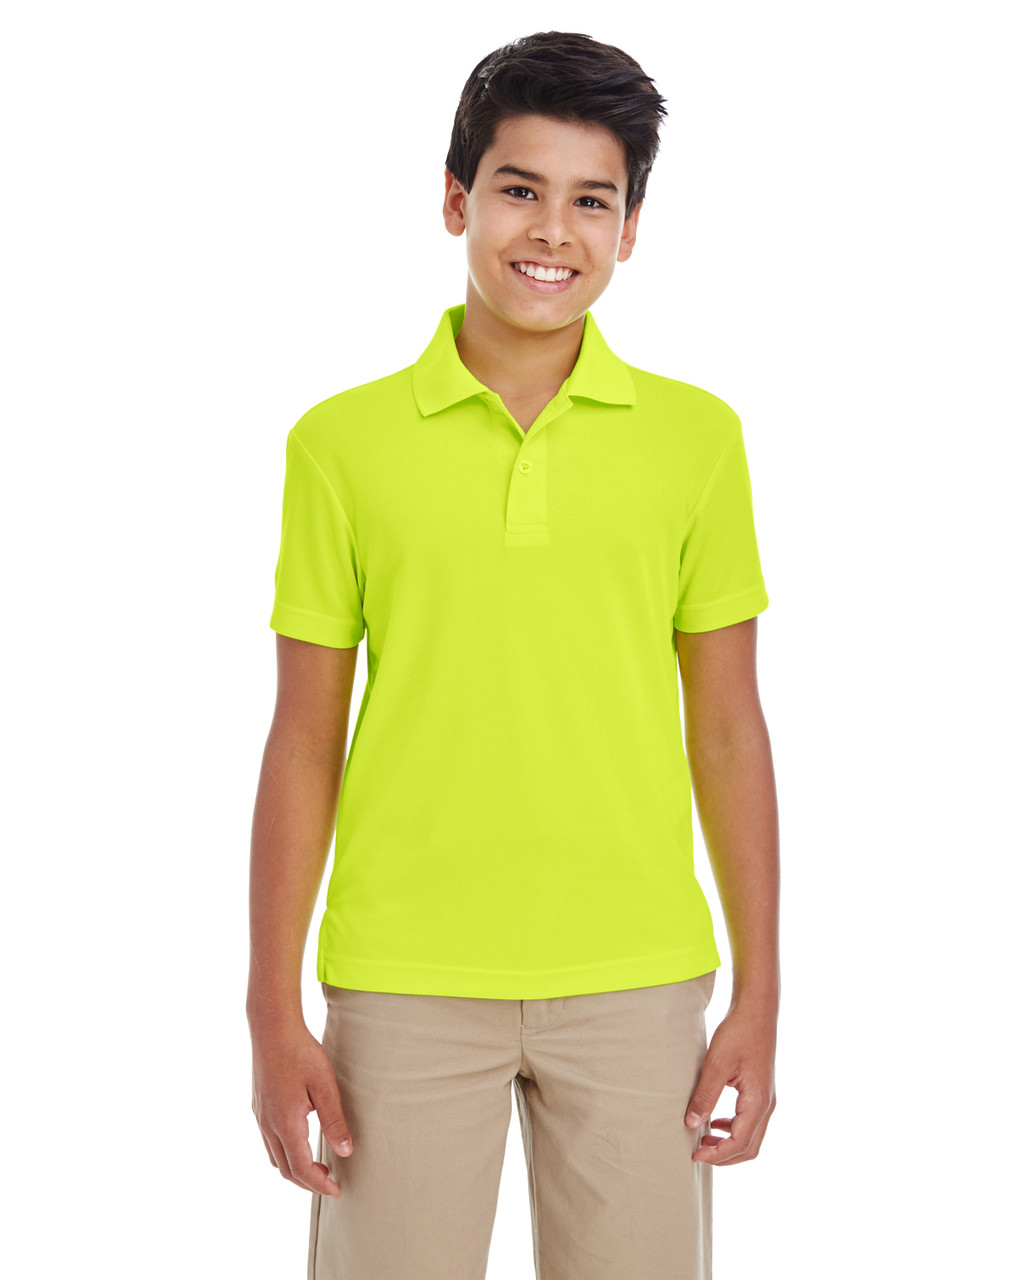 Safety Yellow - 88181Y Ash City - Core 365 Youth Origin Performance Pique Polo Shirt | Blankclothing.ca